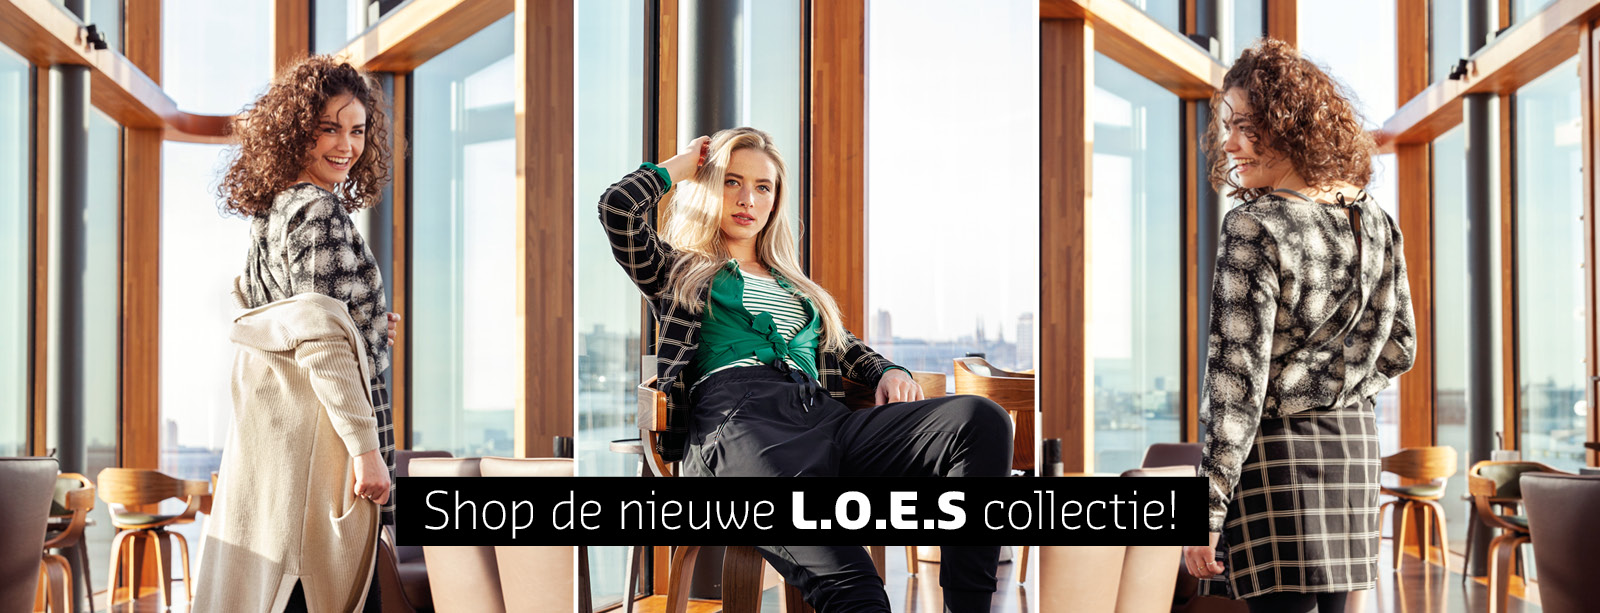 Loes W2019